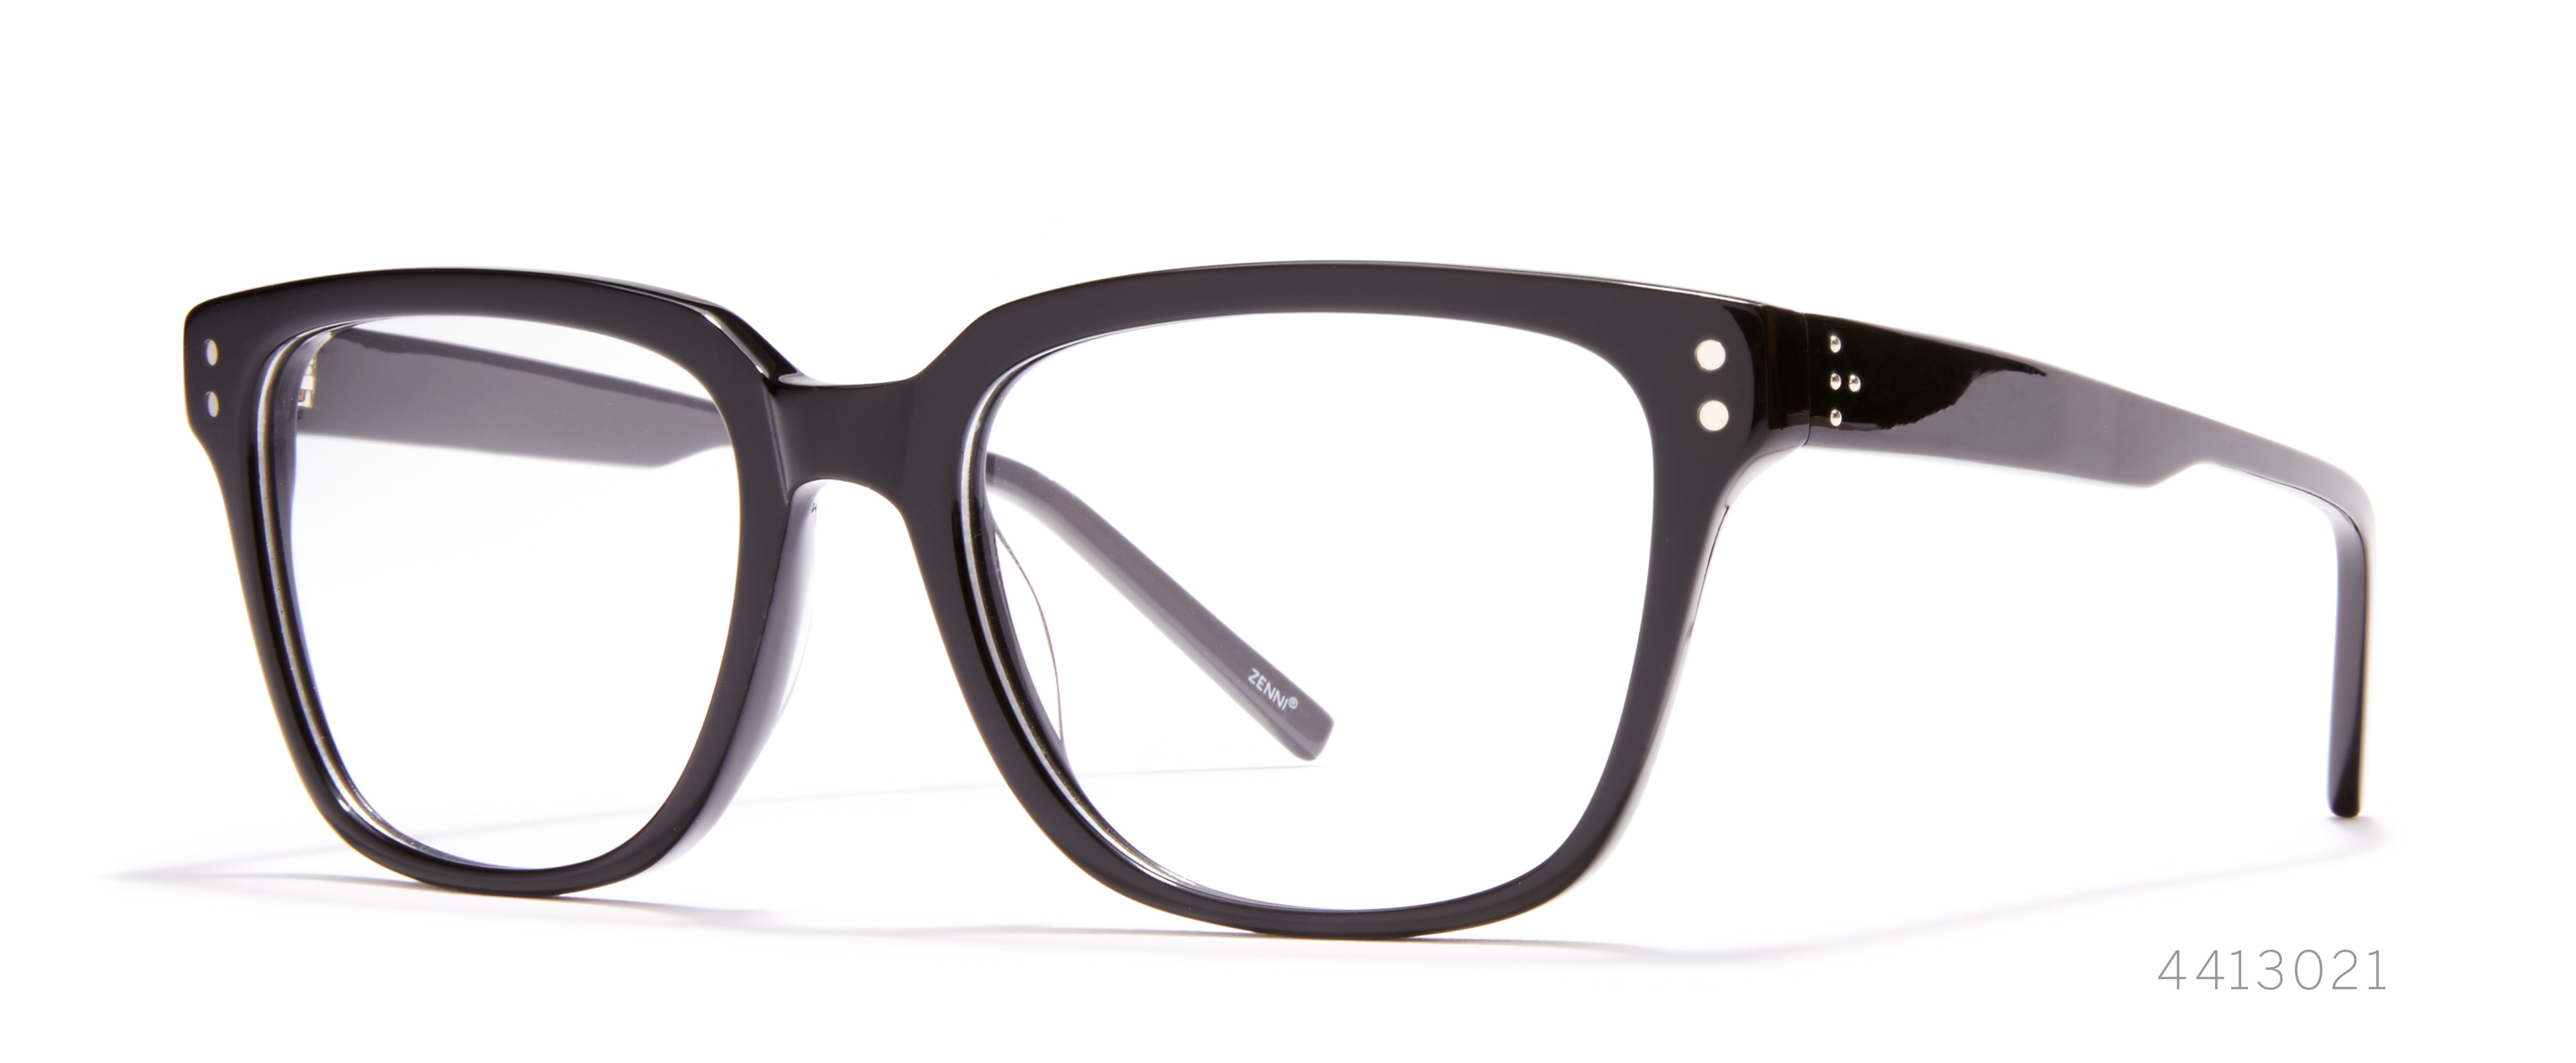 black statement glasses